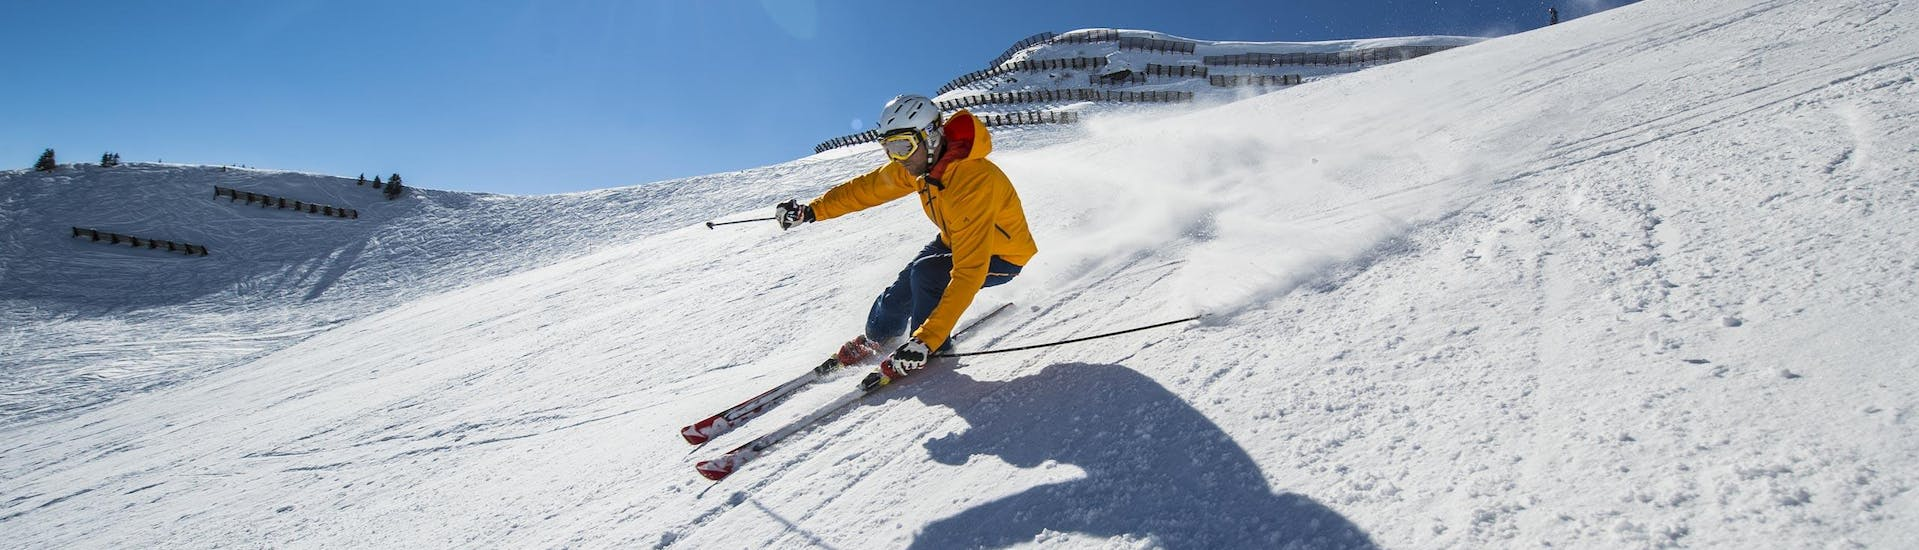 Ski Lessons for Adults - Alle Levels: A skier is skiing down a sunny ski slope while participating in an activity offered by Herbert Lüthi.